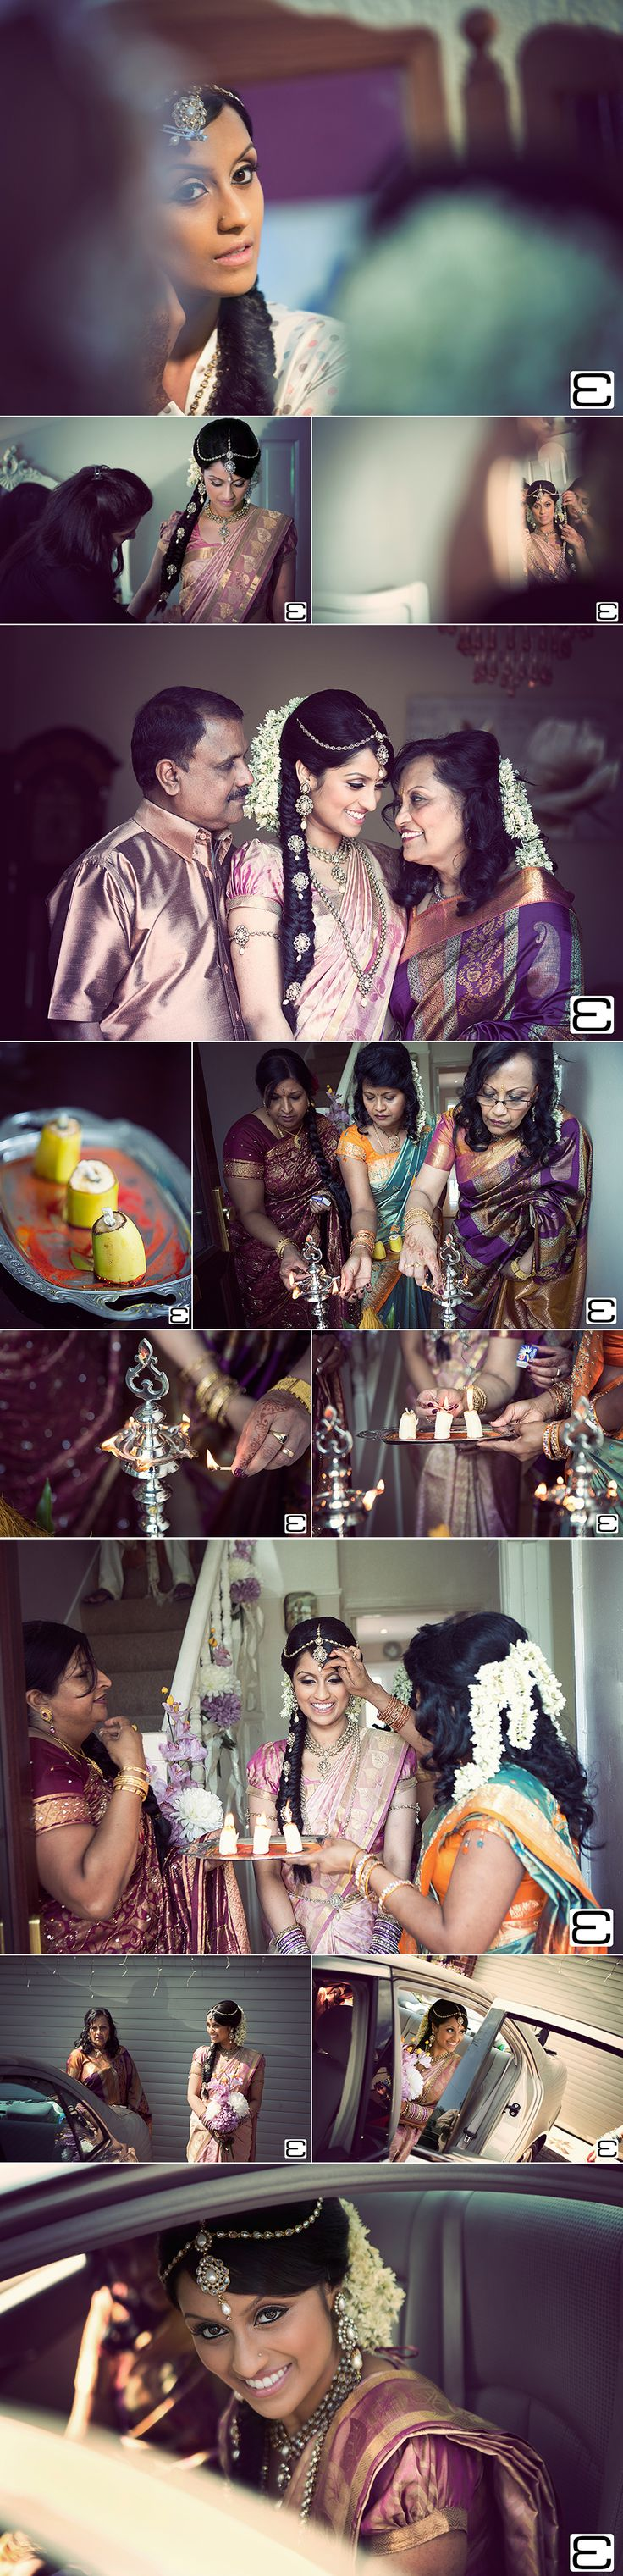 Tamil Wedding Photography At Parklands Quendon Hall